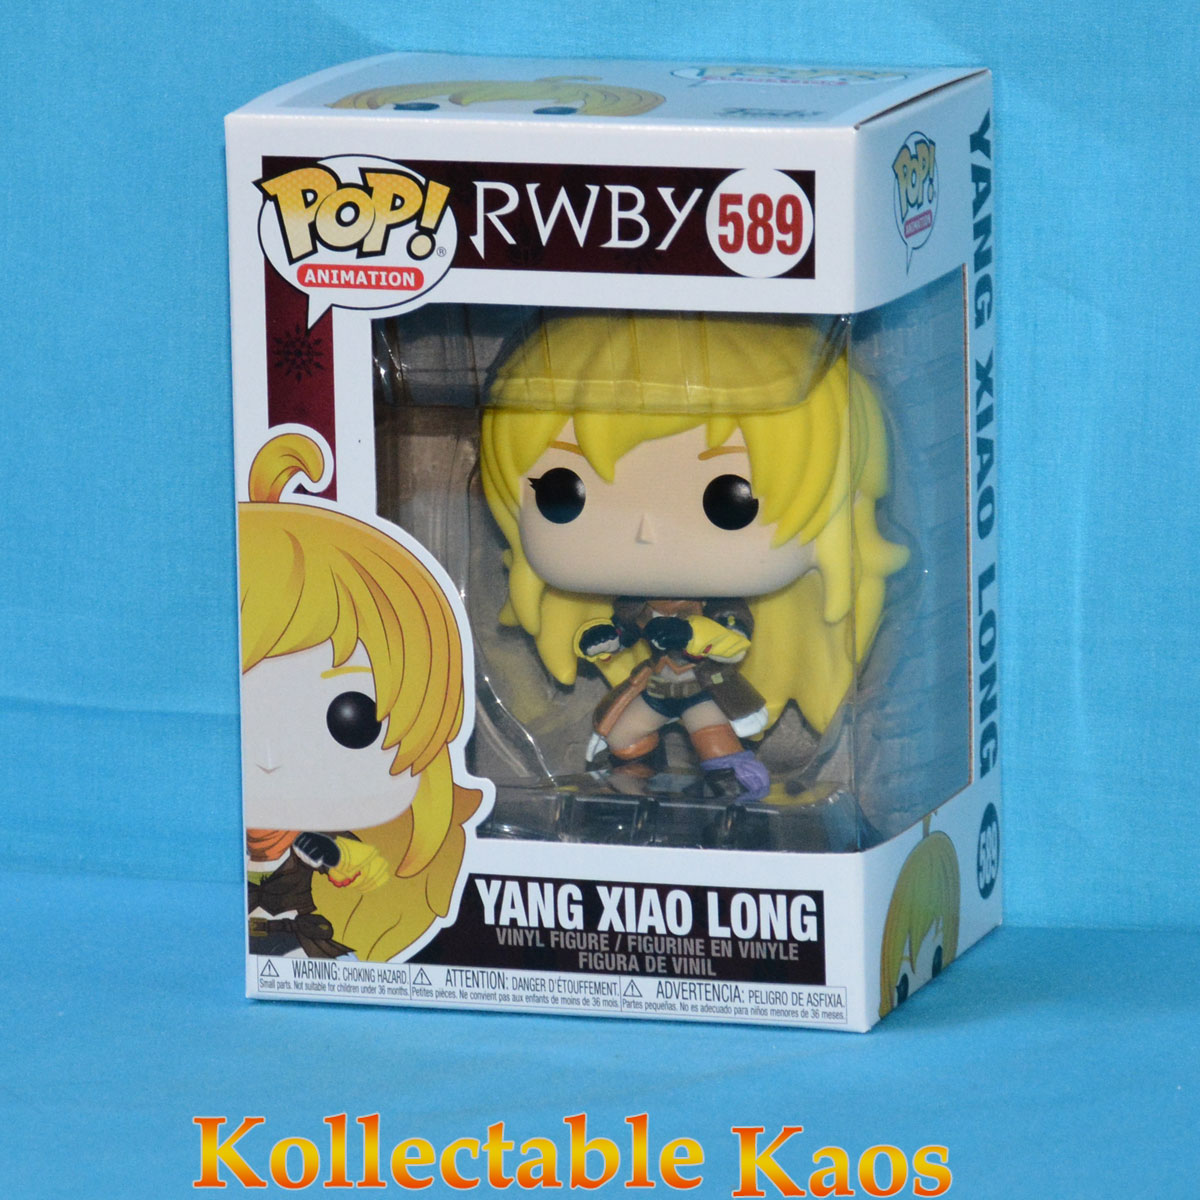 RWBY - Yang Xiao Long Pop! Vinyl Figure #589